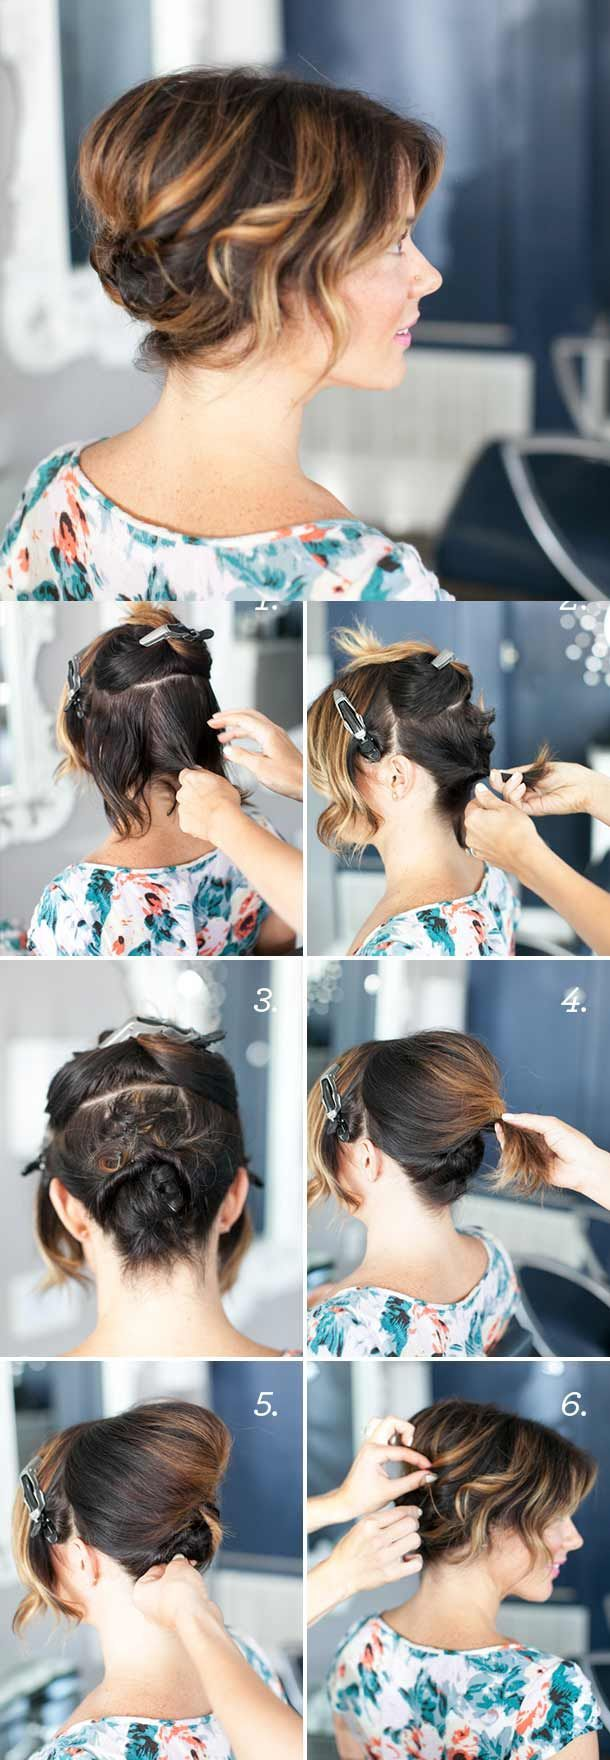 Great step by step tutorial for short hair